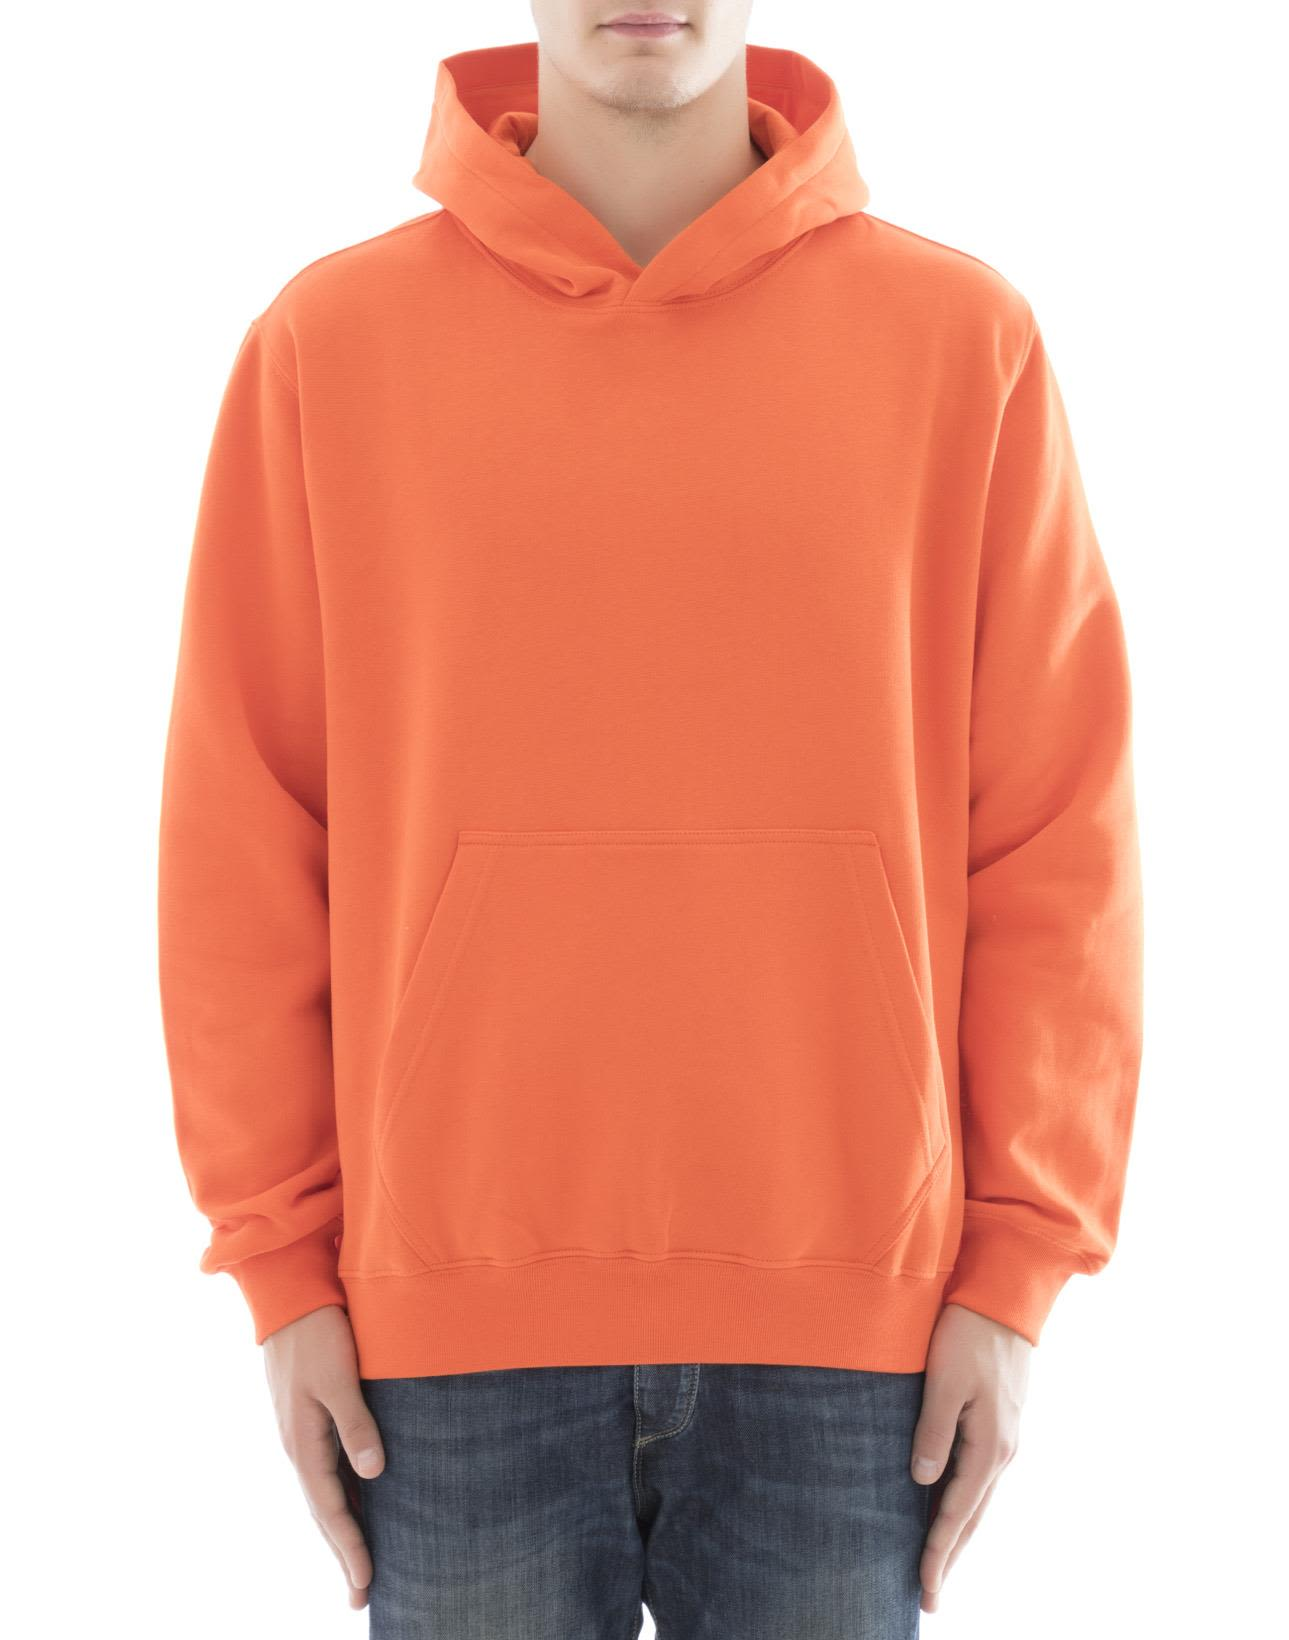 MSGM - Orange Cotton Sweater - Orange, Men's Sweaters | Italist